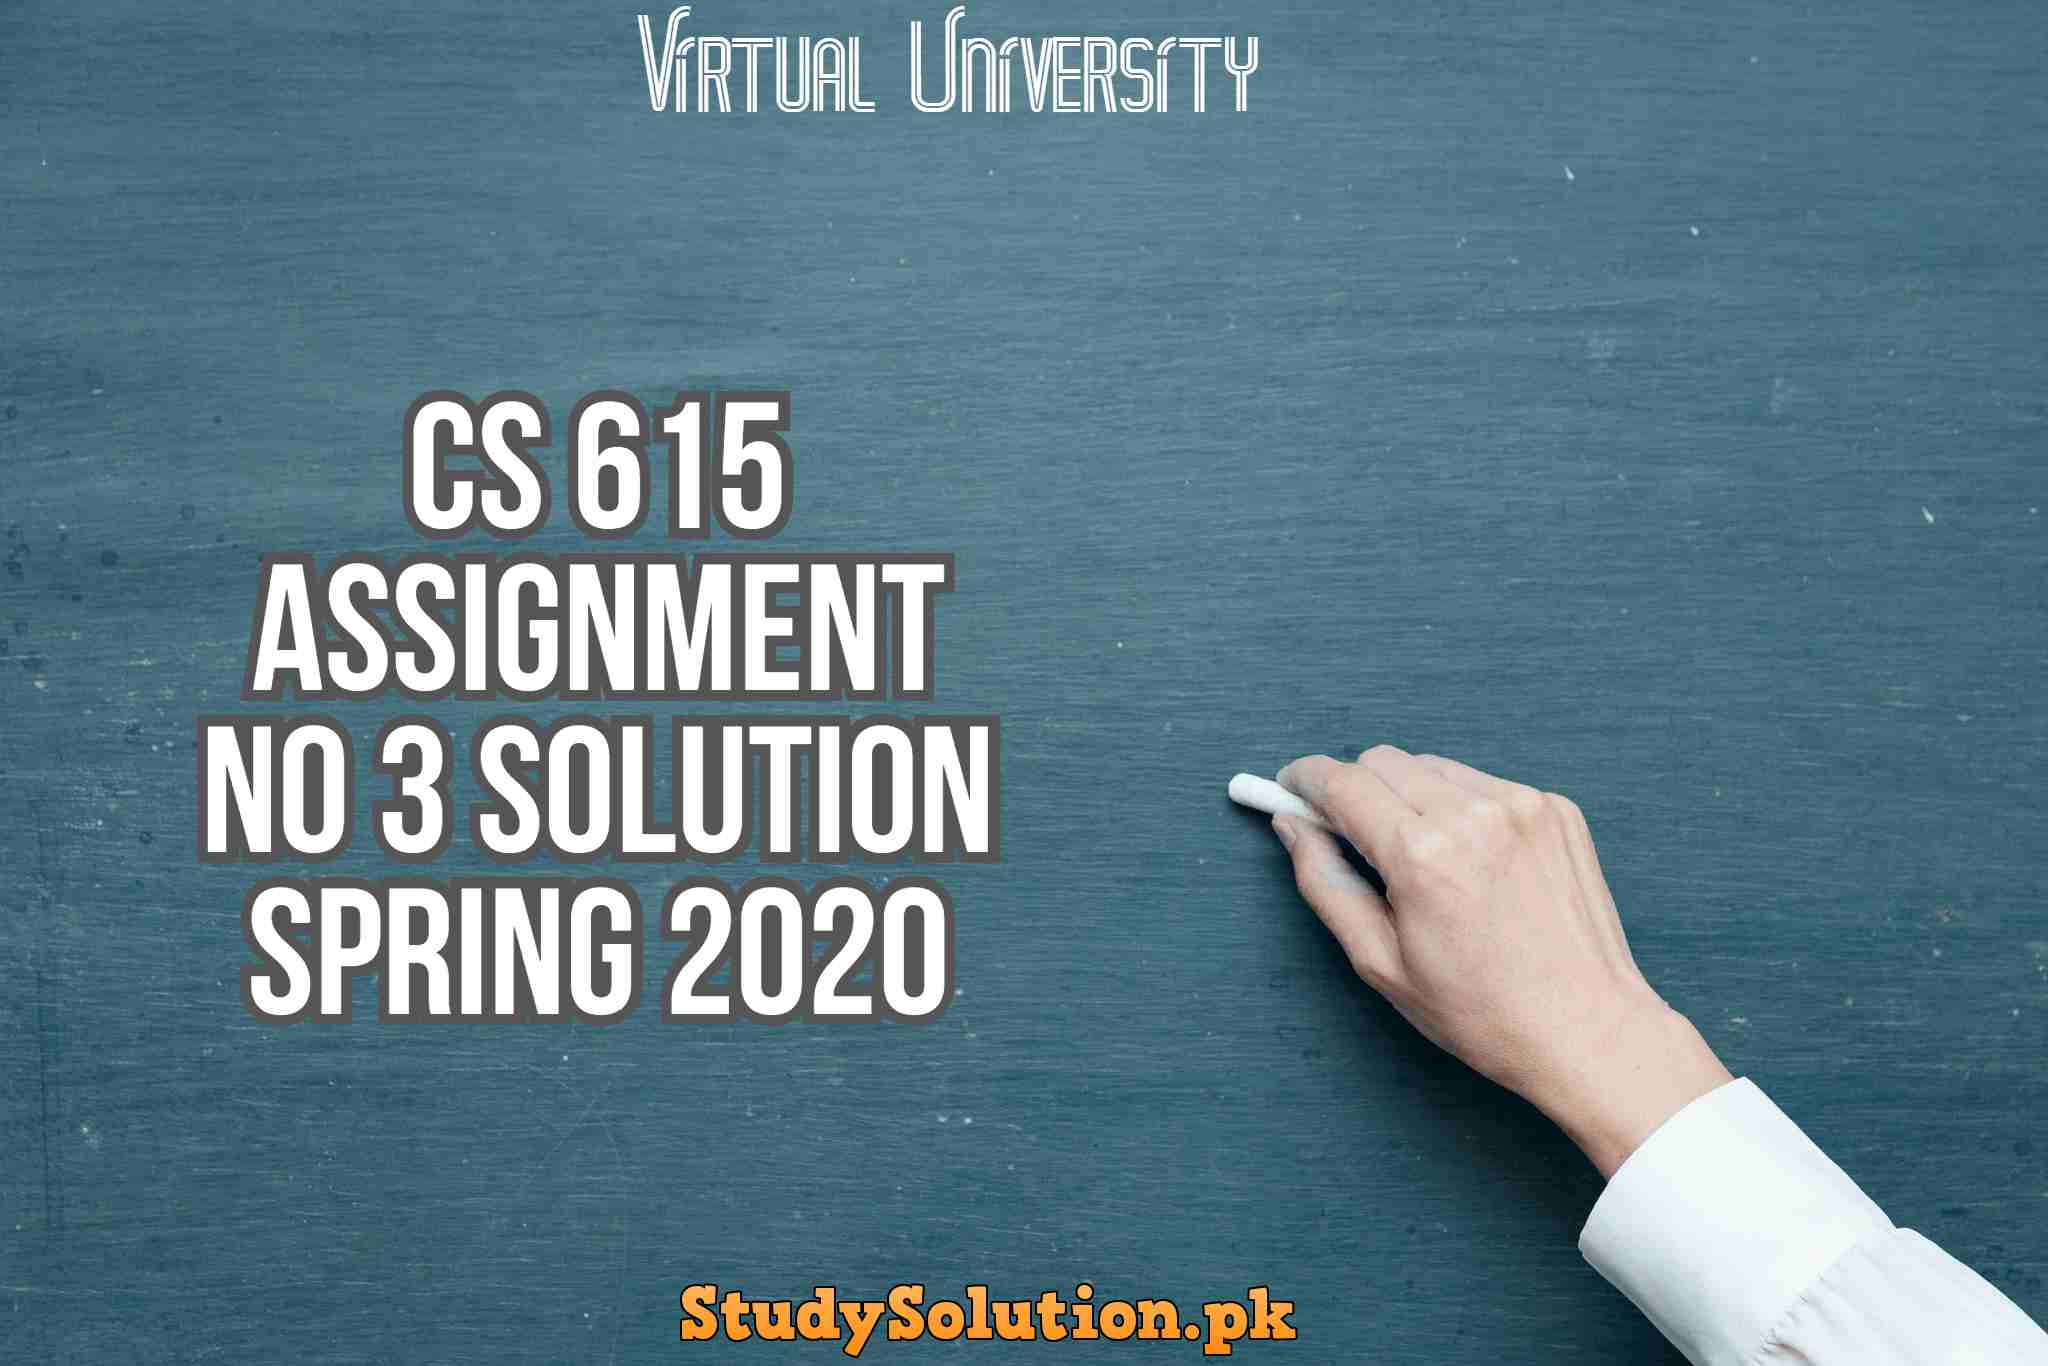 CS 615 Assignment No 3 Solution Spring 2020